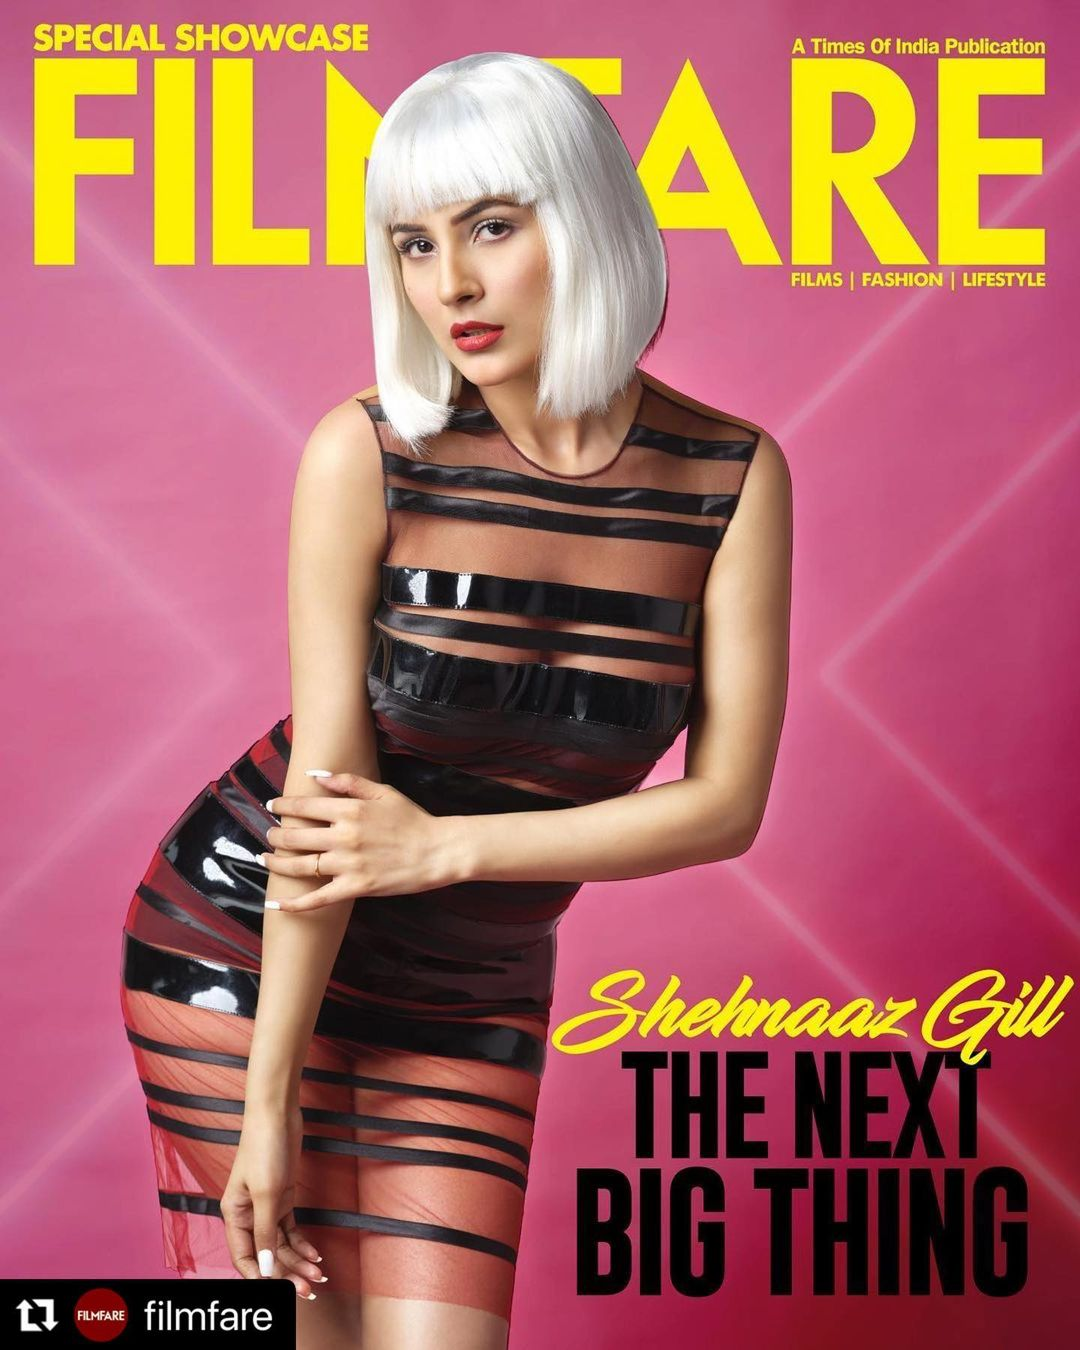 Another milestone! Shehnaaz Gill features on cover of Filmfare magazine